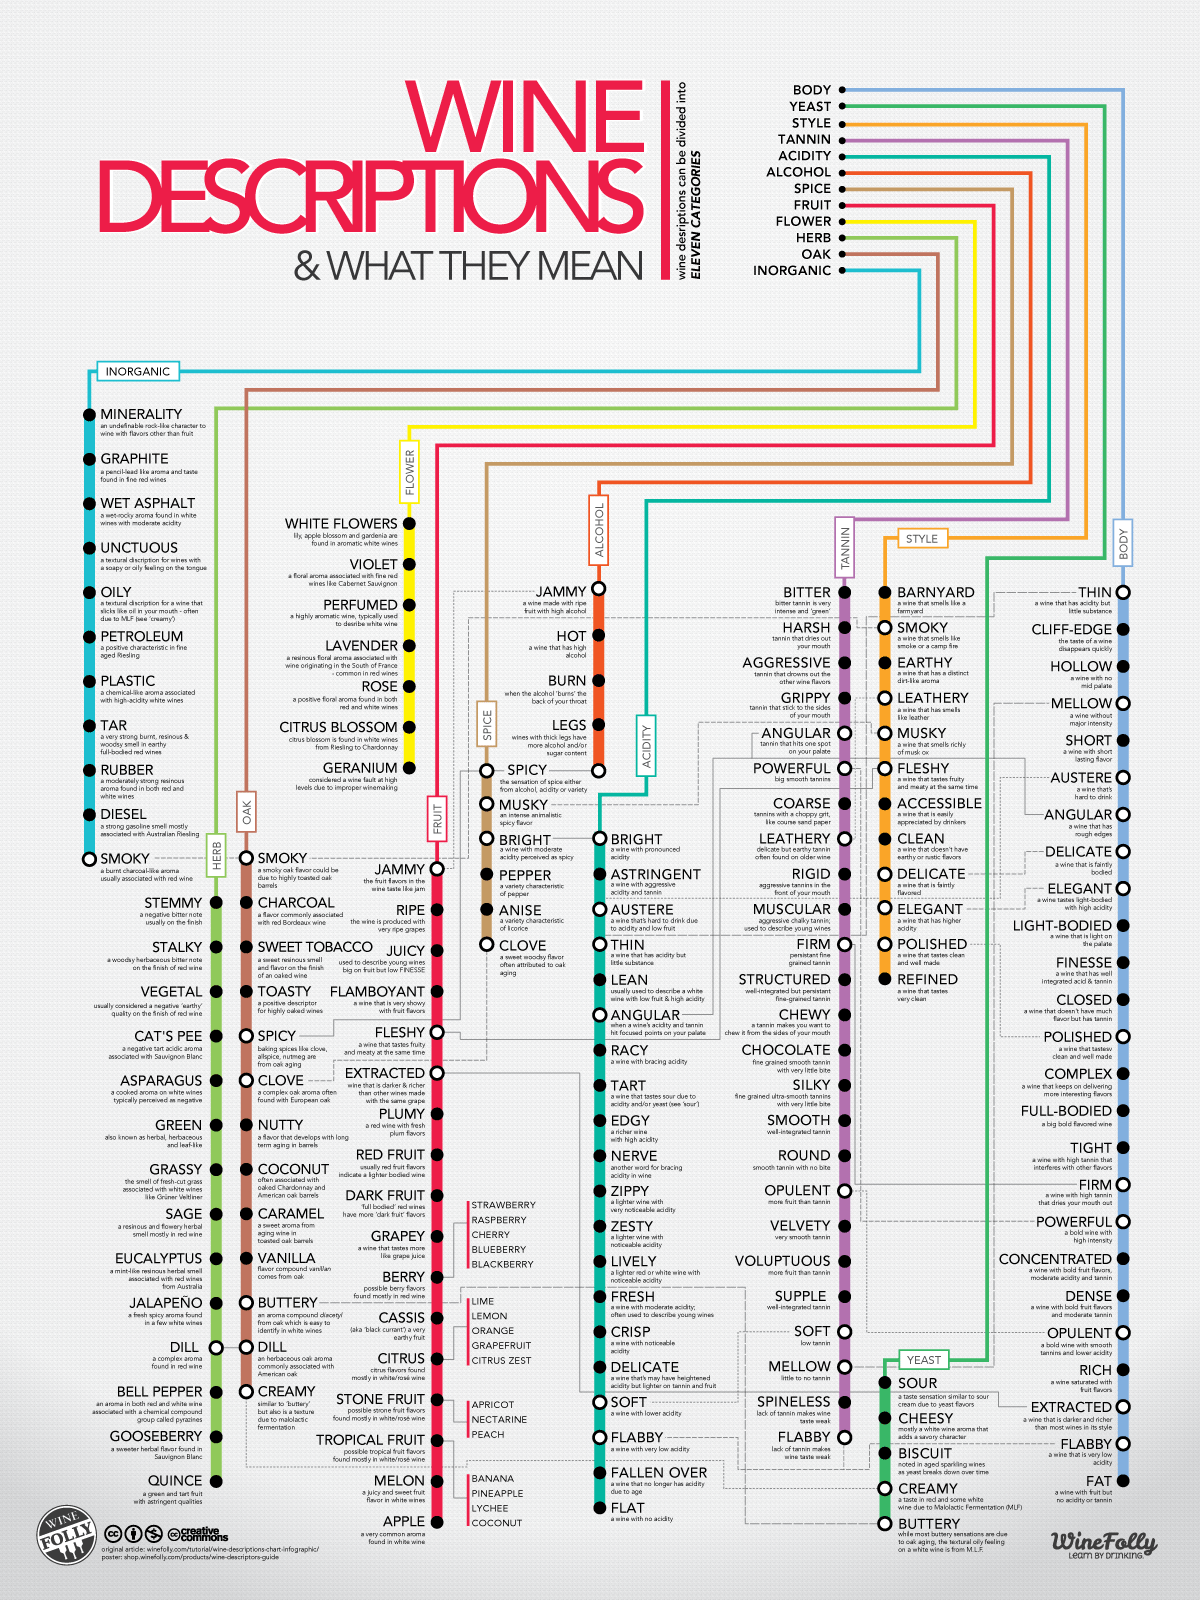 Wine descriptions chart infographic liquorlist the marketplace for adults with taste liquorlistcom also subway style education rh pinterest